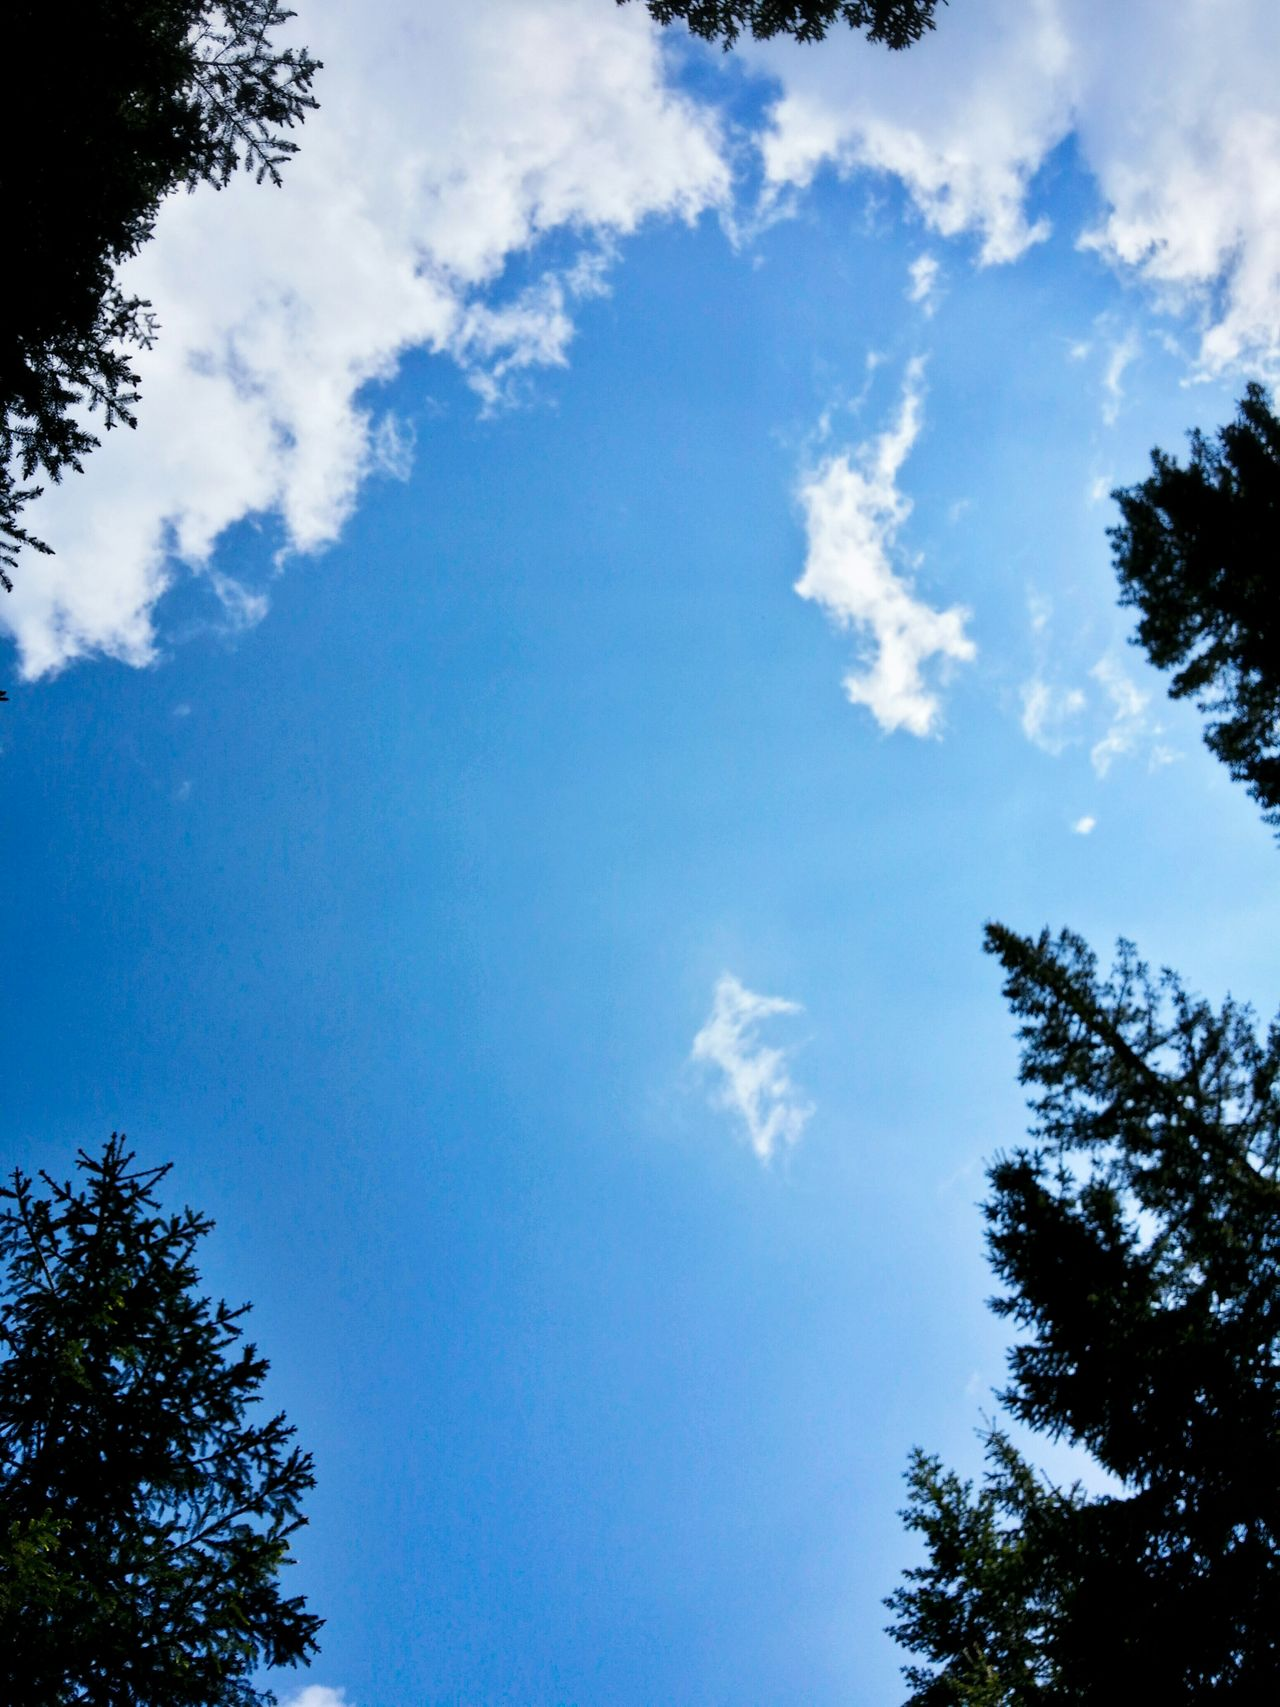 Neck Stretching Never Tired Of Looking Up Juxtaposing Practice Firs And Clouds Asiago Highland Asiago Vicenza Veneto Italy Travel Photography Travel Voyage Traveling Mobile Photography Fine Art Photography